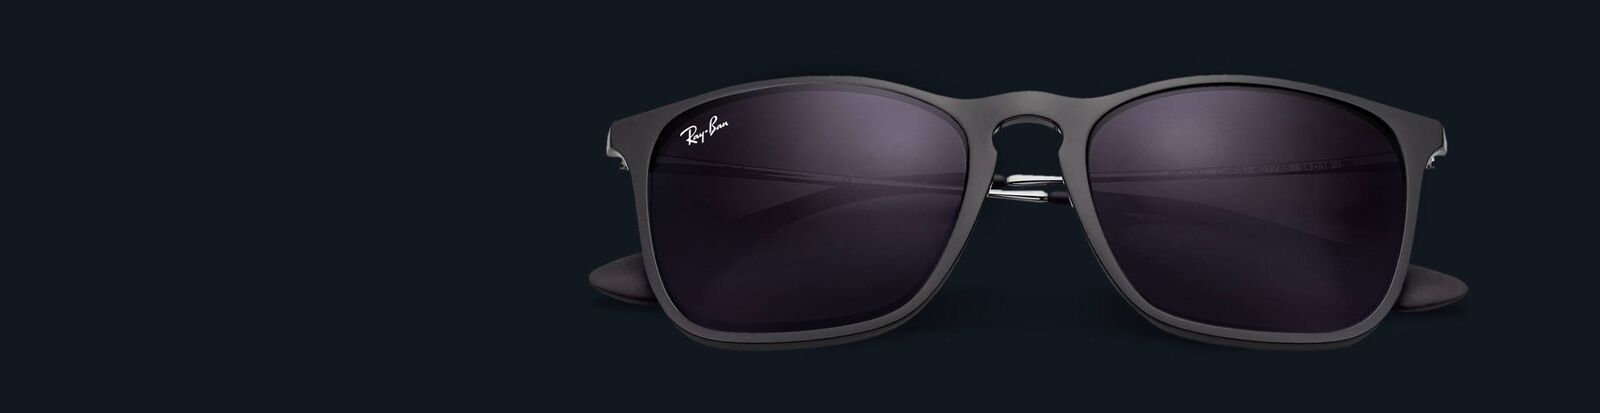 Ray-Ban Shades for $59.99. Save now.